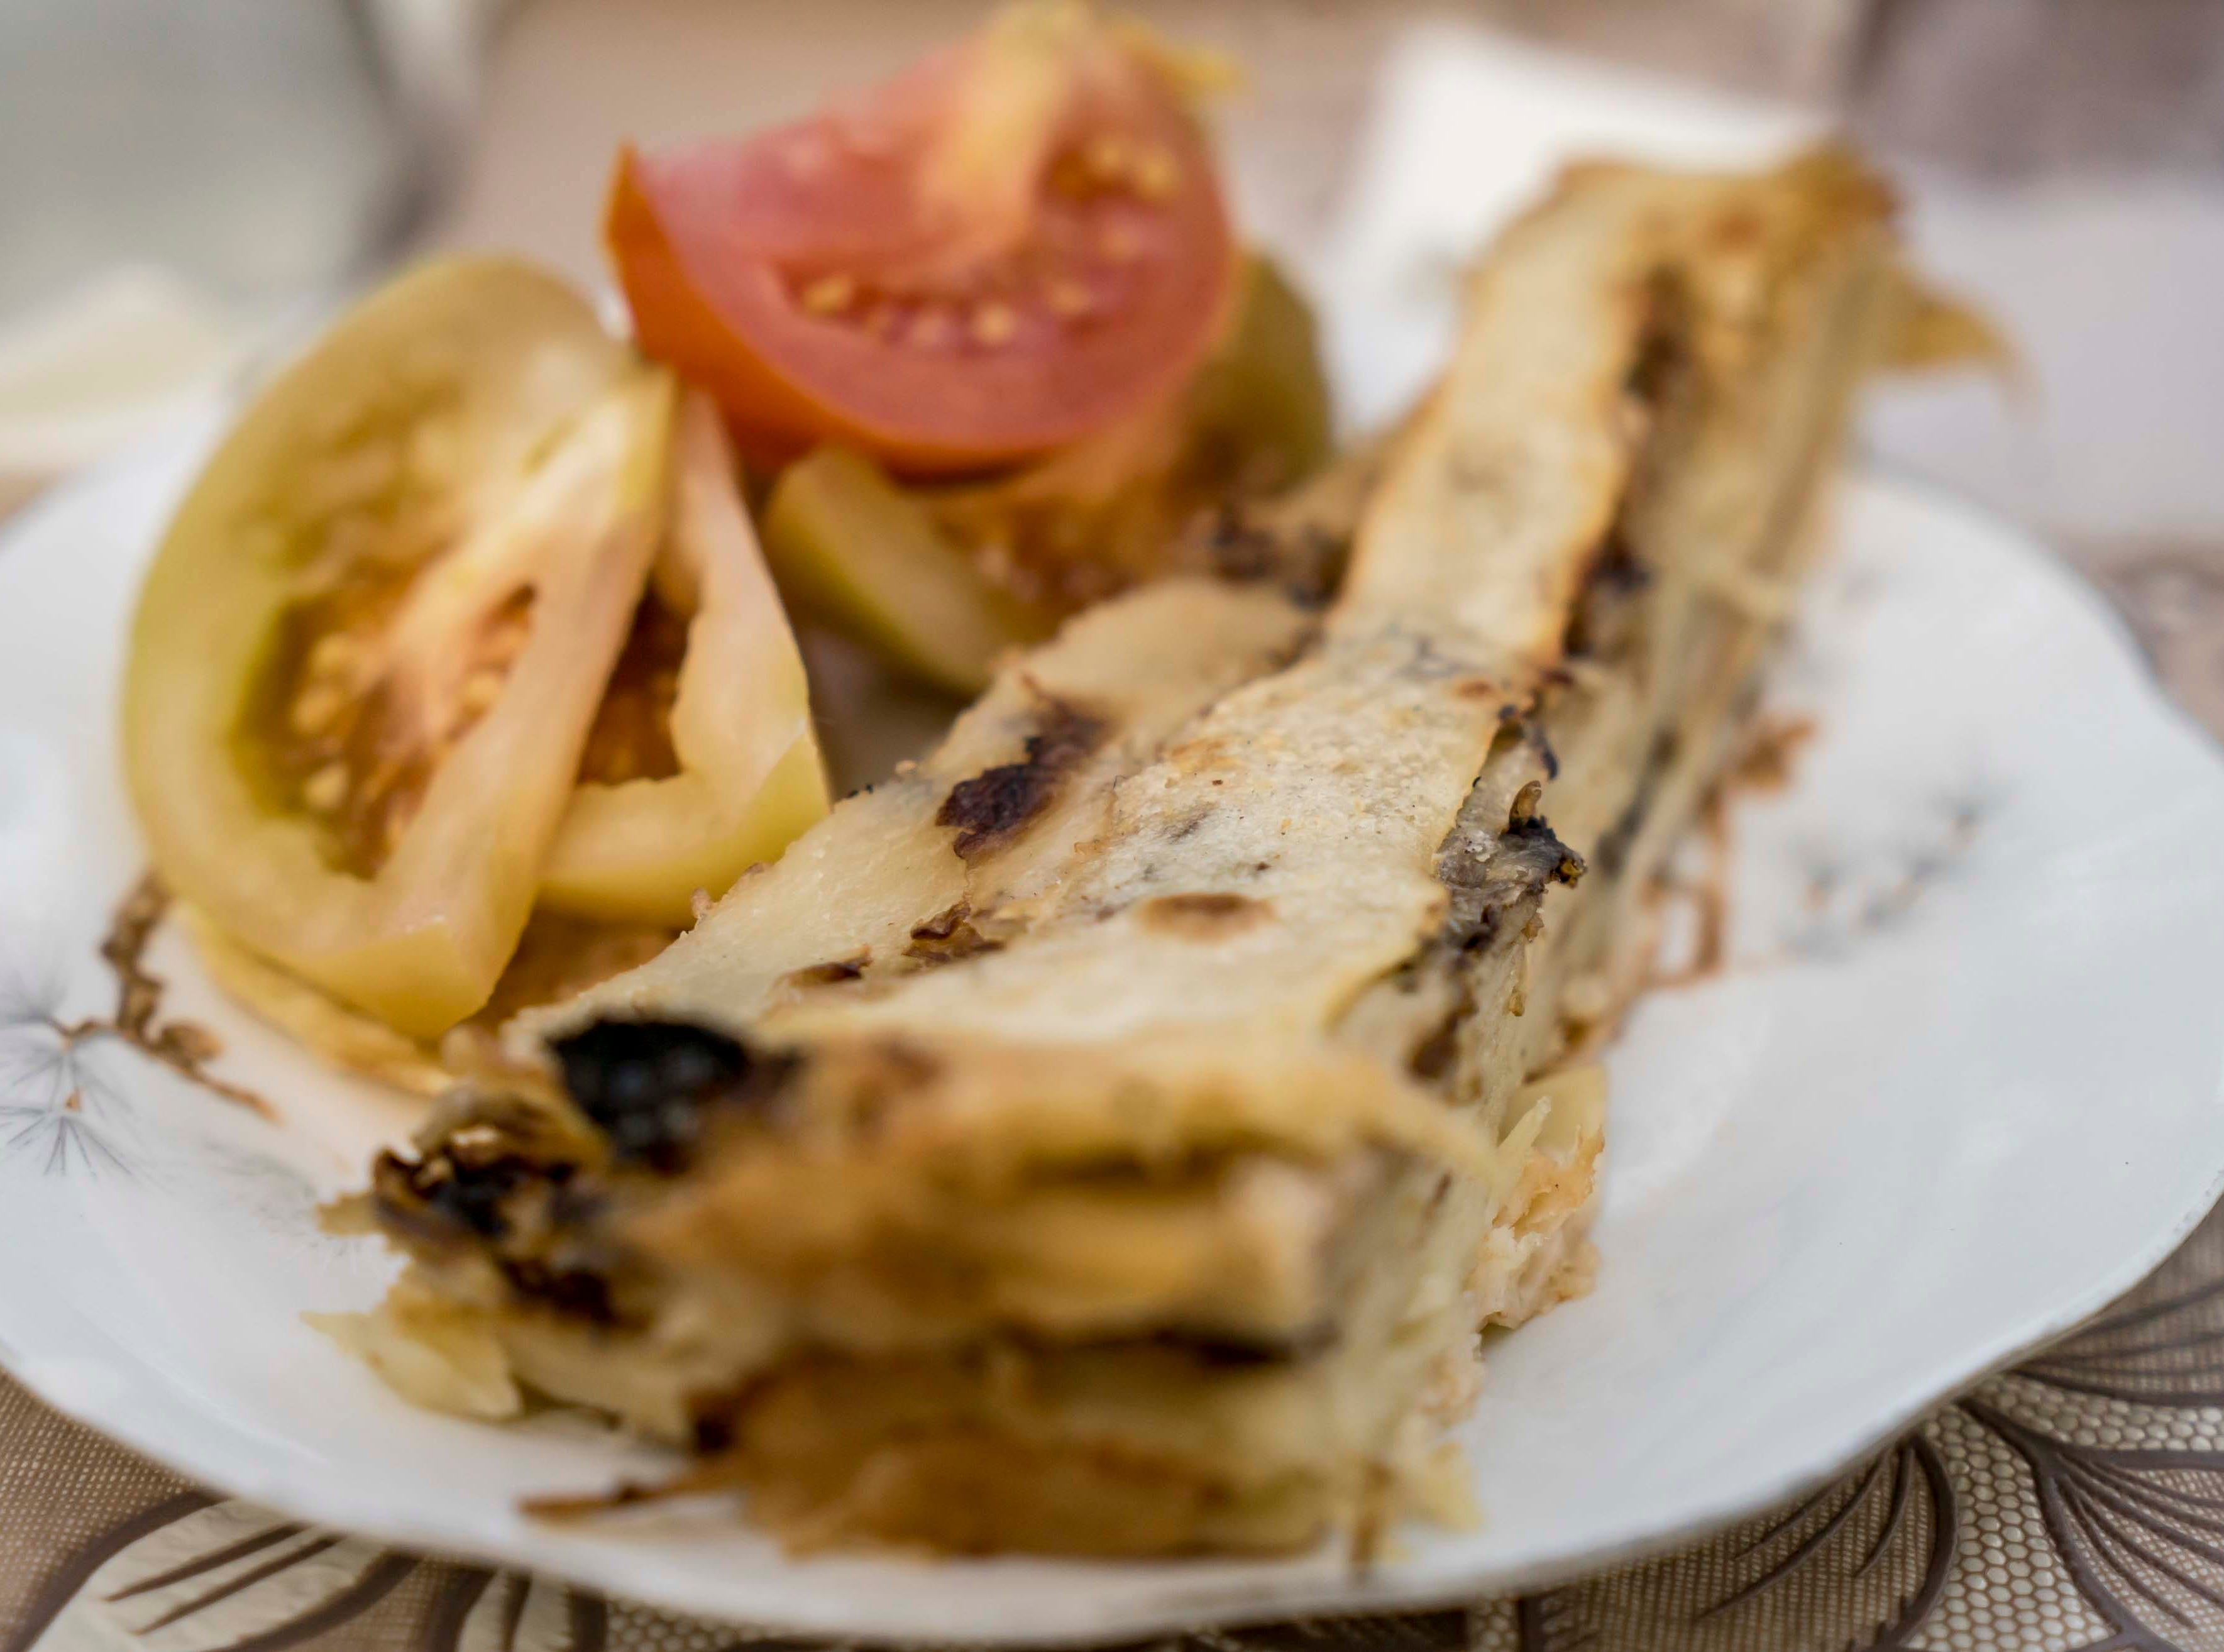 In Vushtrri we were served flia, a Kosovo Albanian dish, during our visit to Kosovo in Sept. 2018. It consists of multiple crepe-like layers brushed with cream.